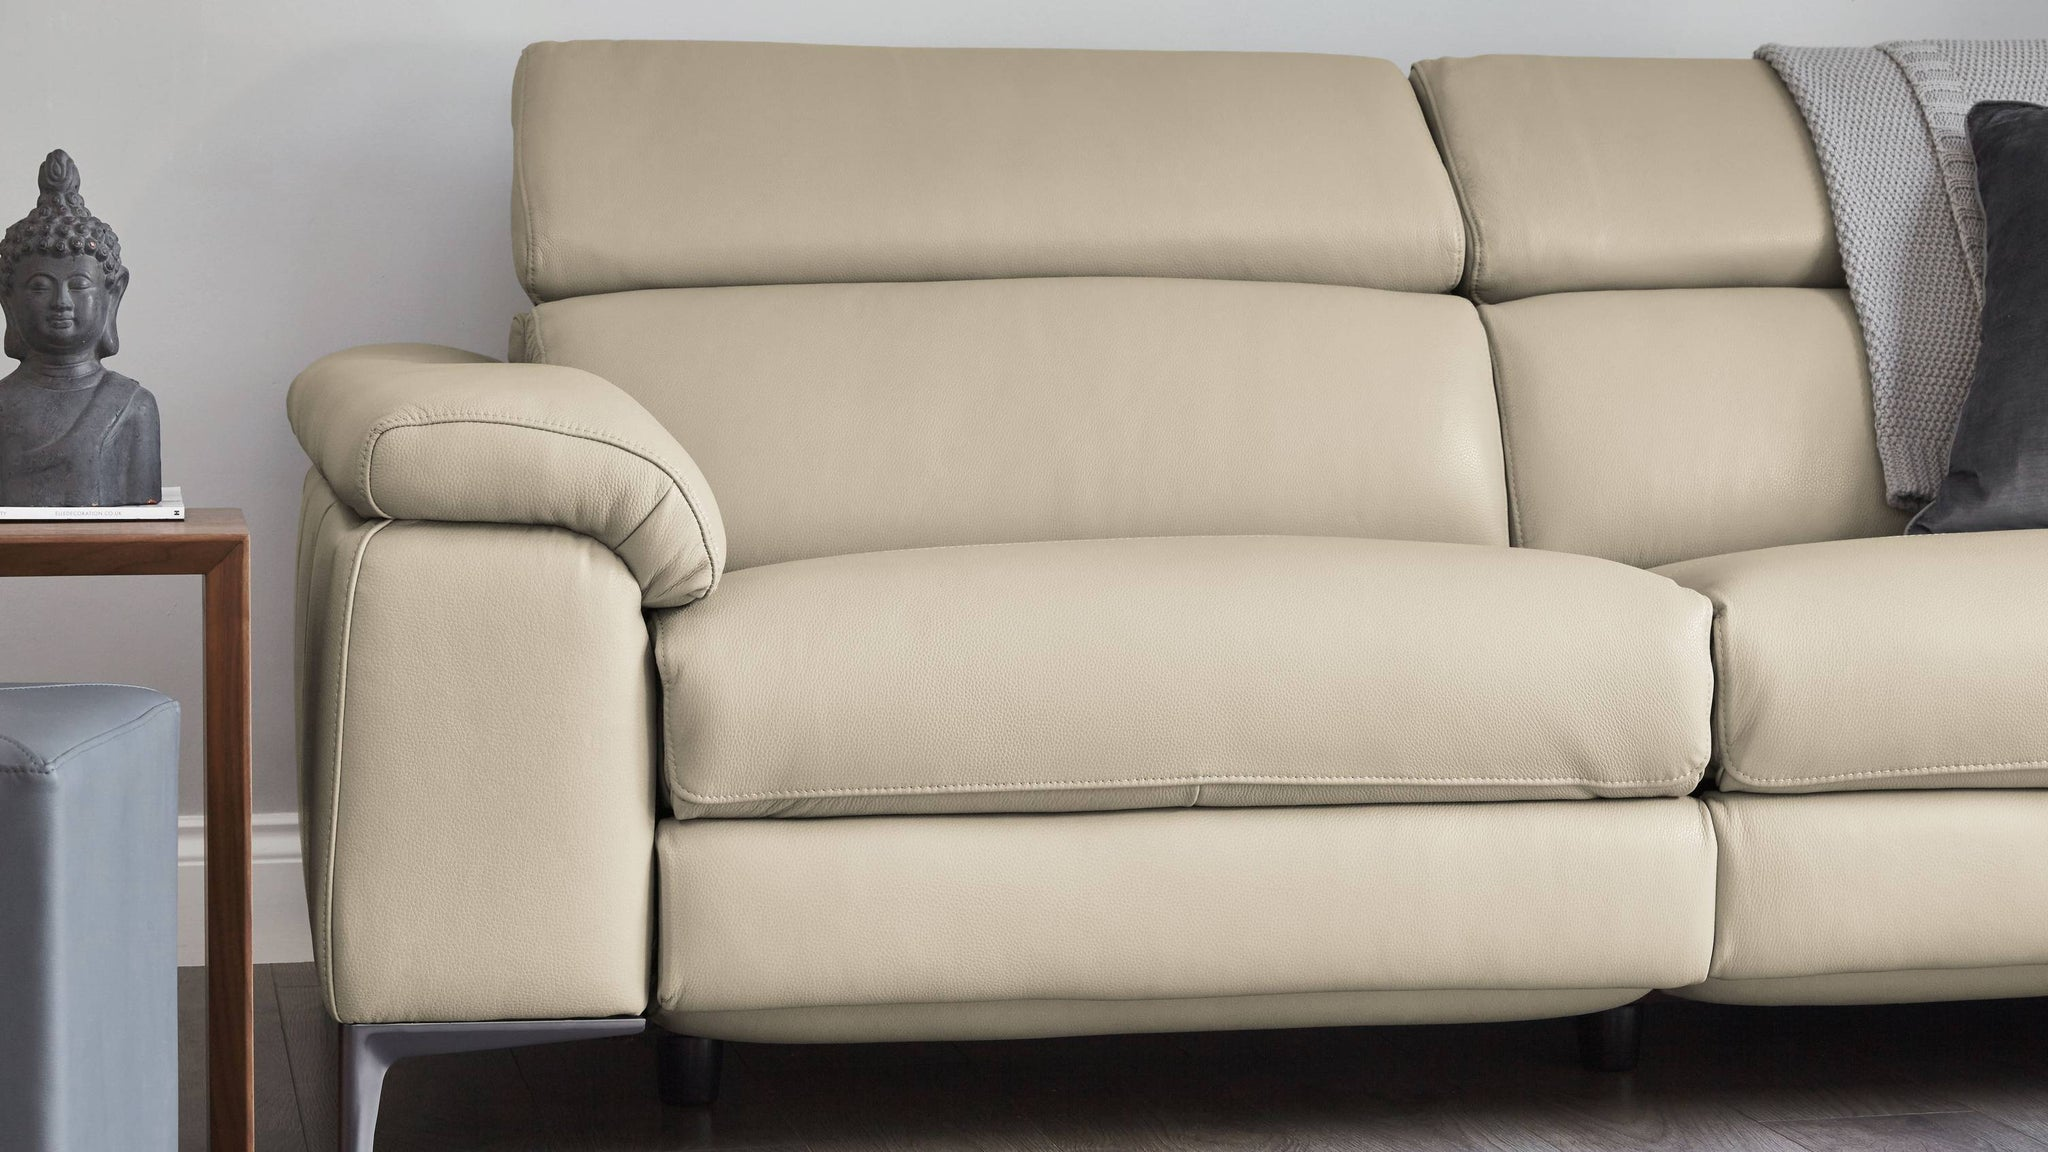 Wren 3 Seater Leather Recliner Sofa